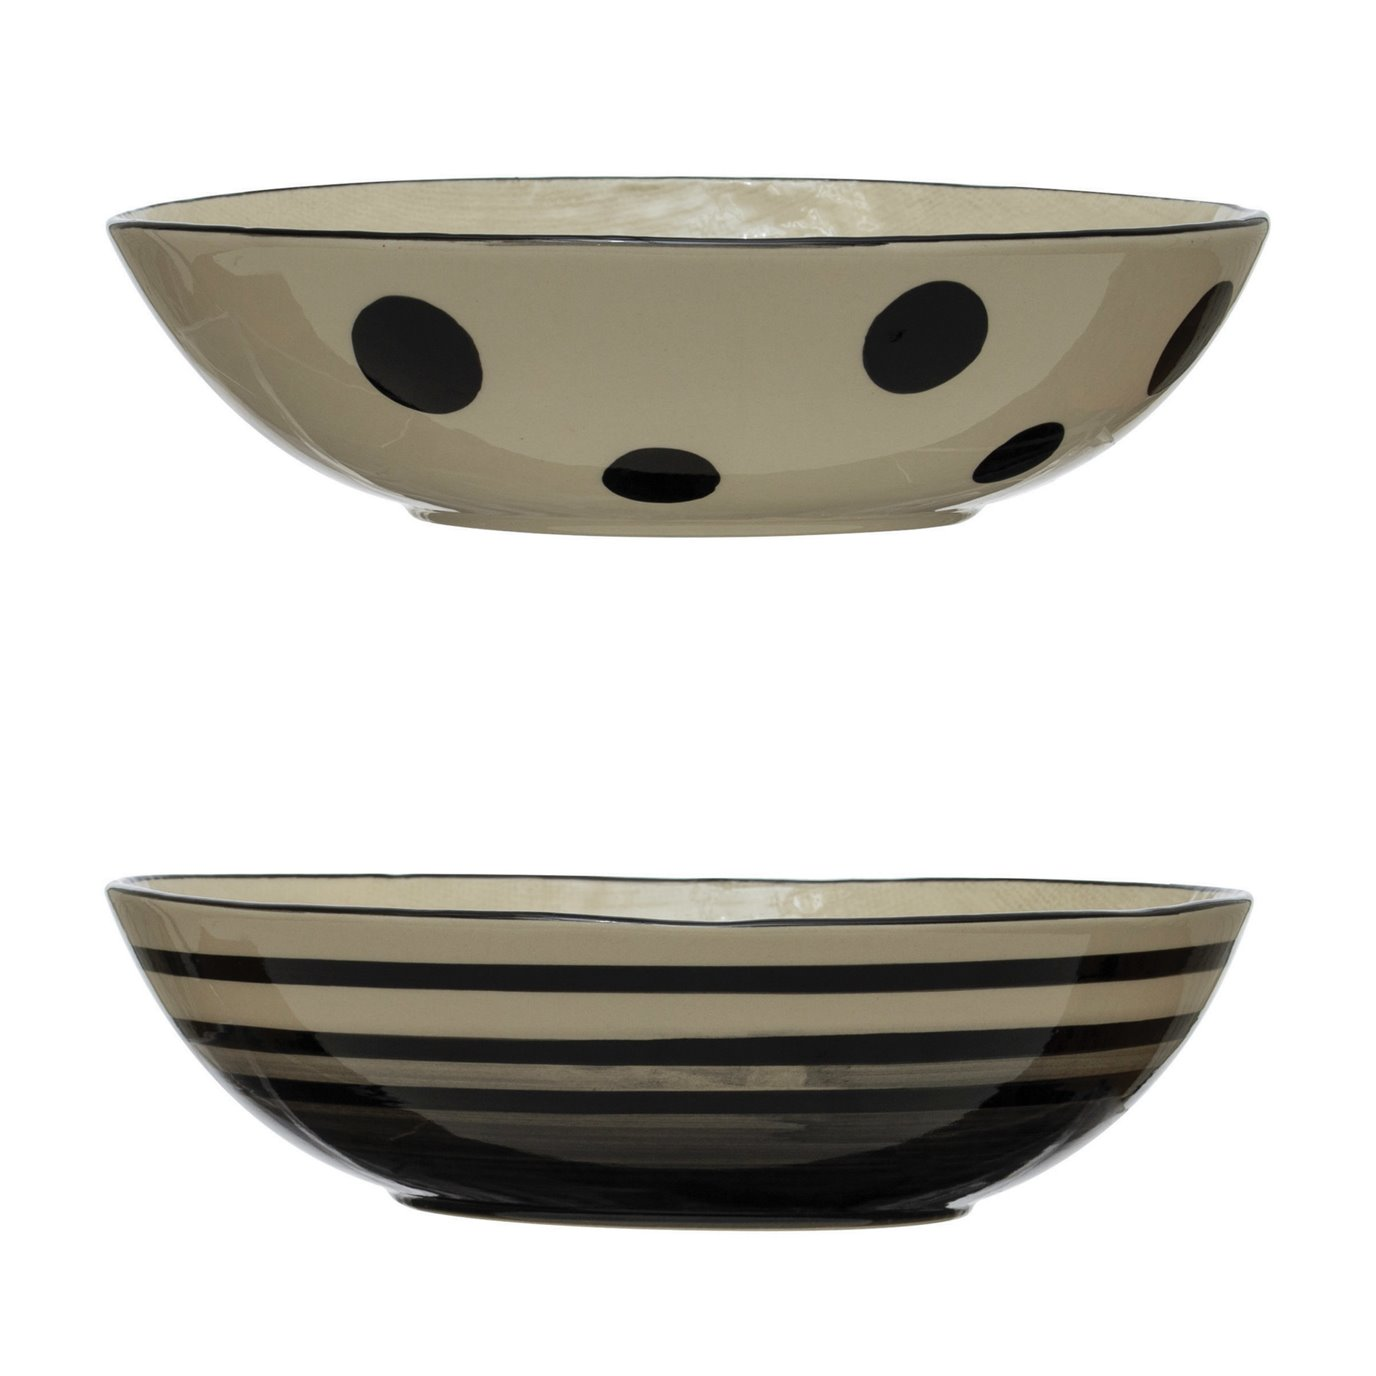 Hand-Painted Stoneware Serving Bowl, Black & White, 2 Styles